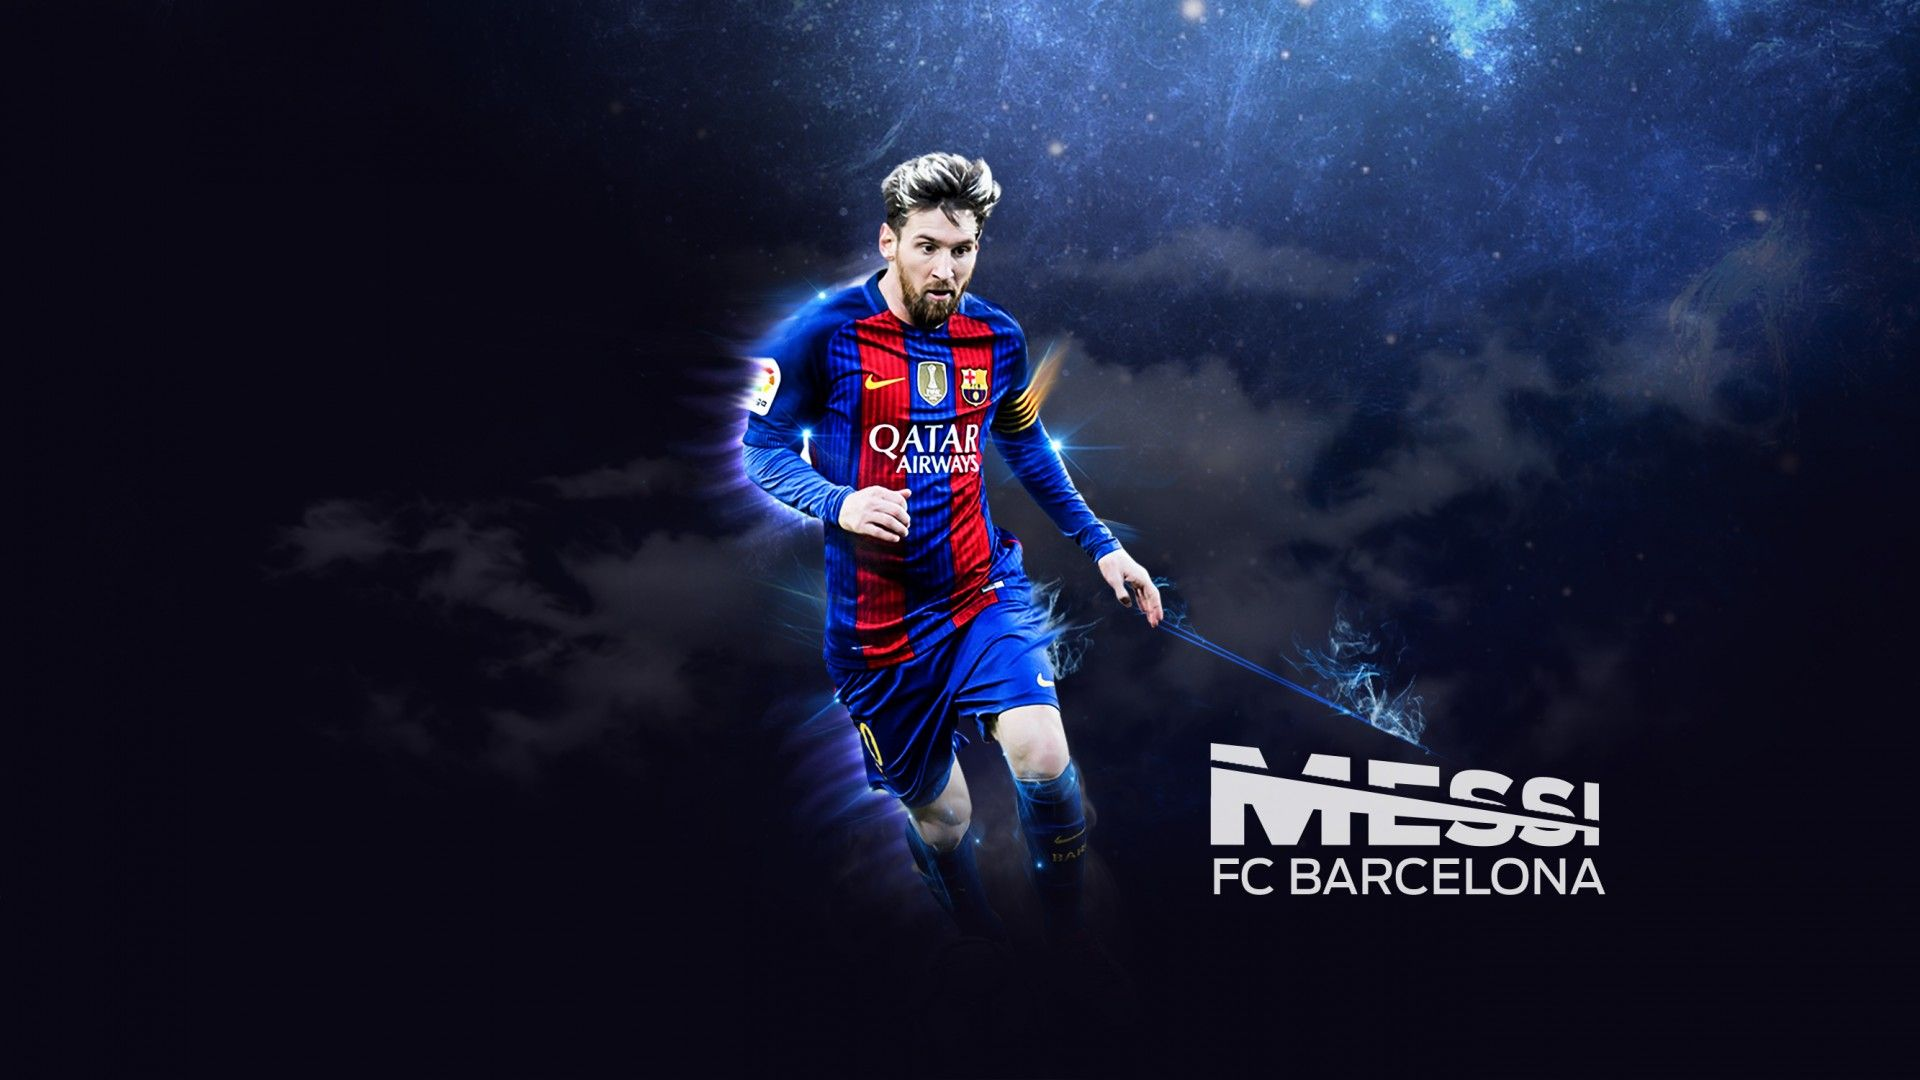 Messi Wallpaper for Pc 2020